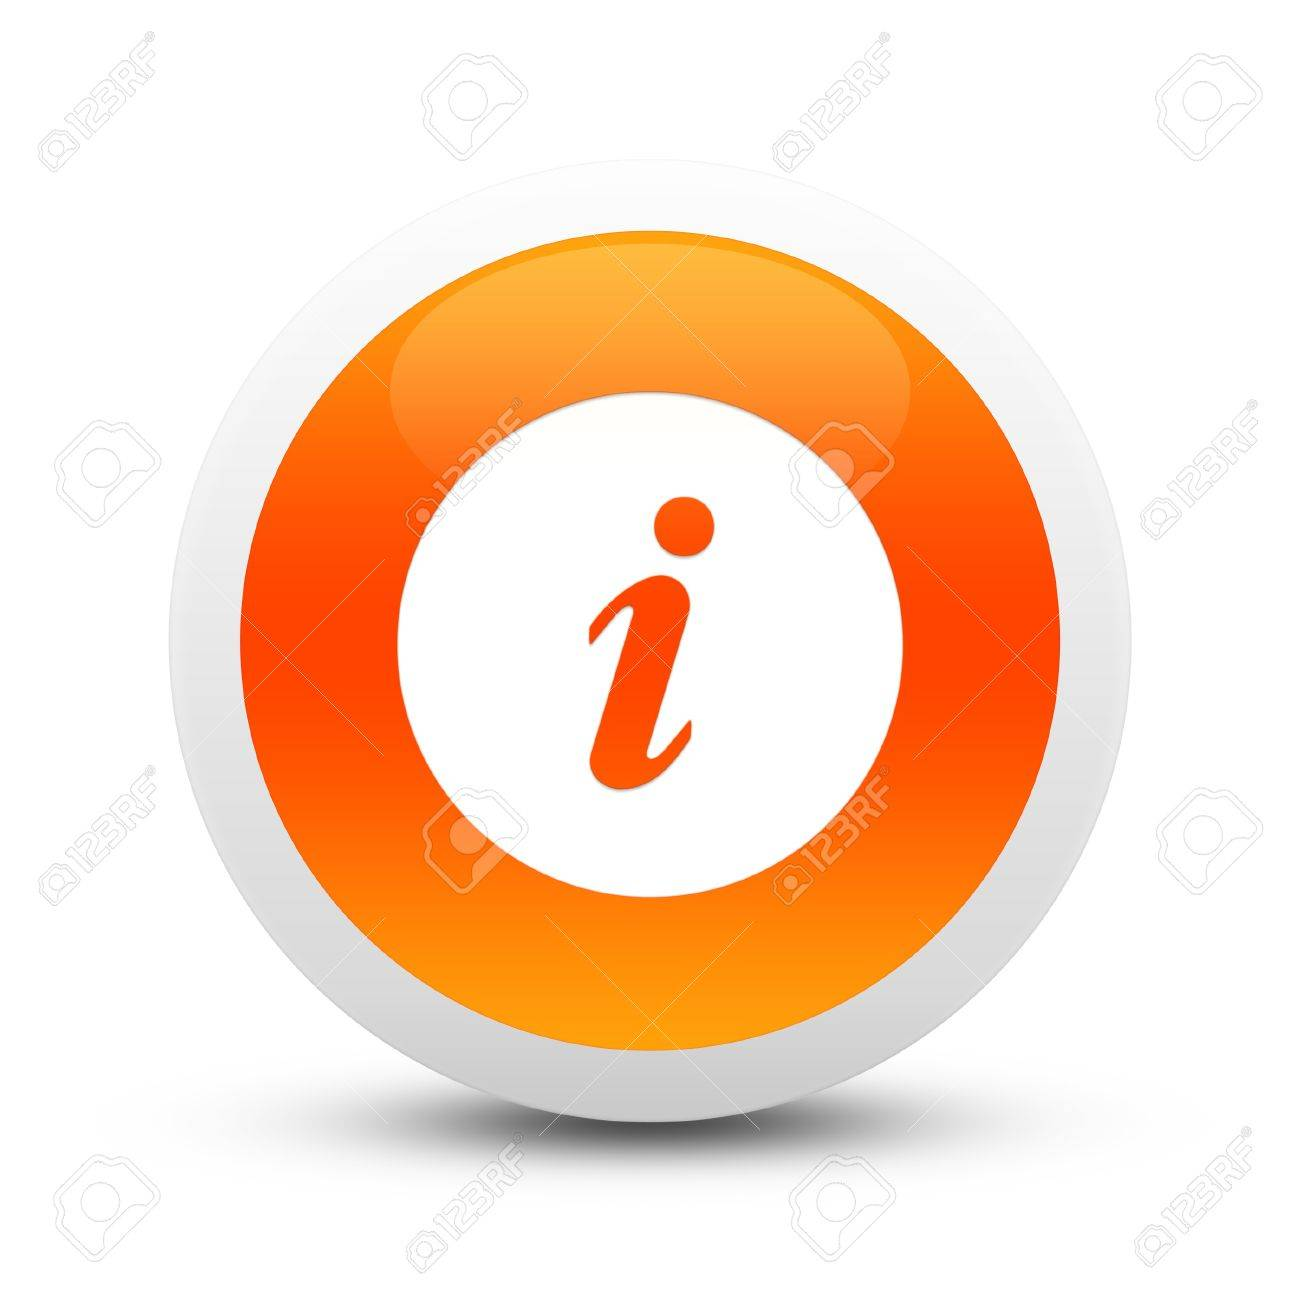 Glossy information button Stock Photo - 20407402